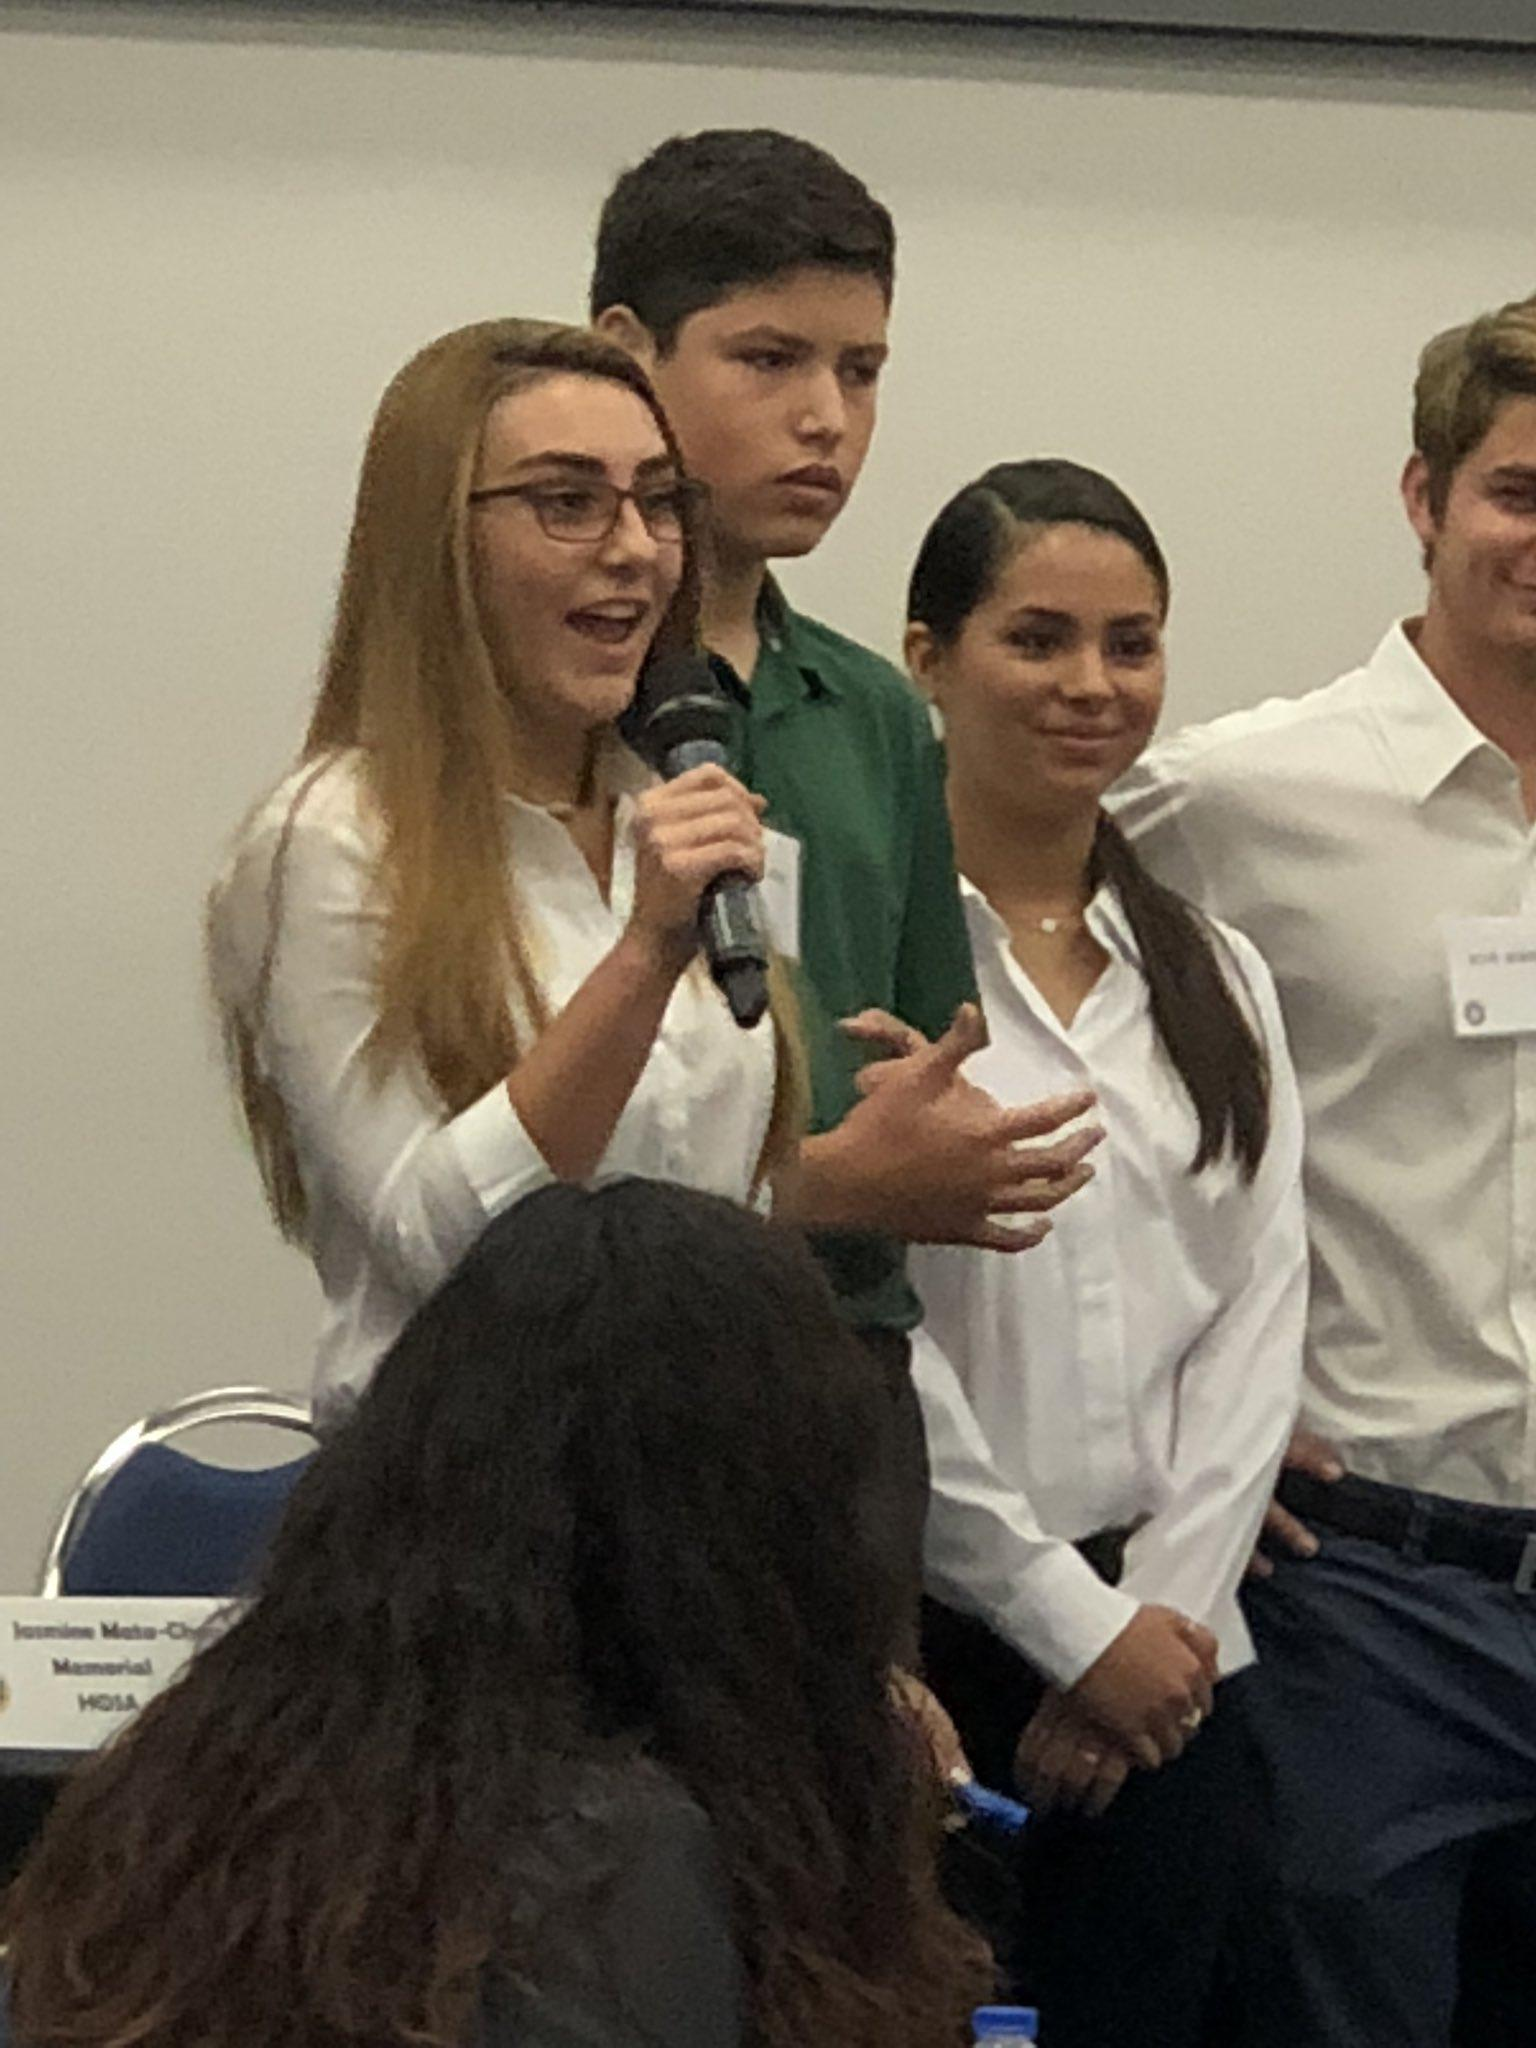 students speaking with a microphone